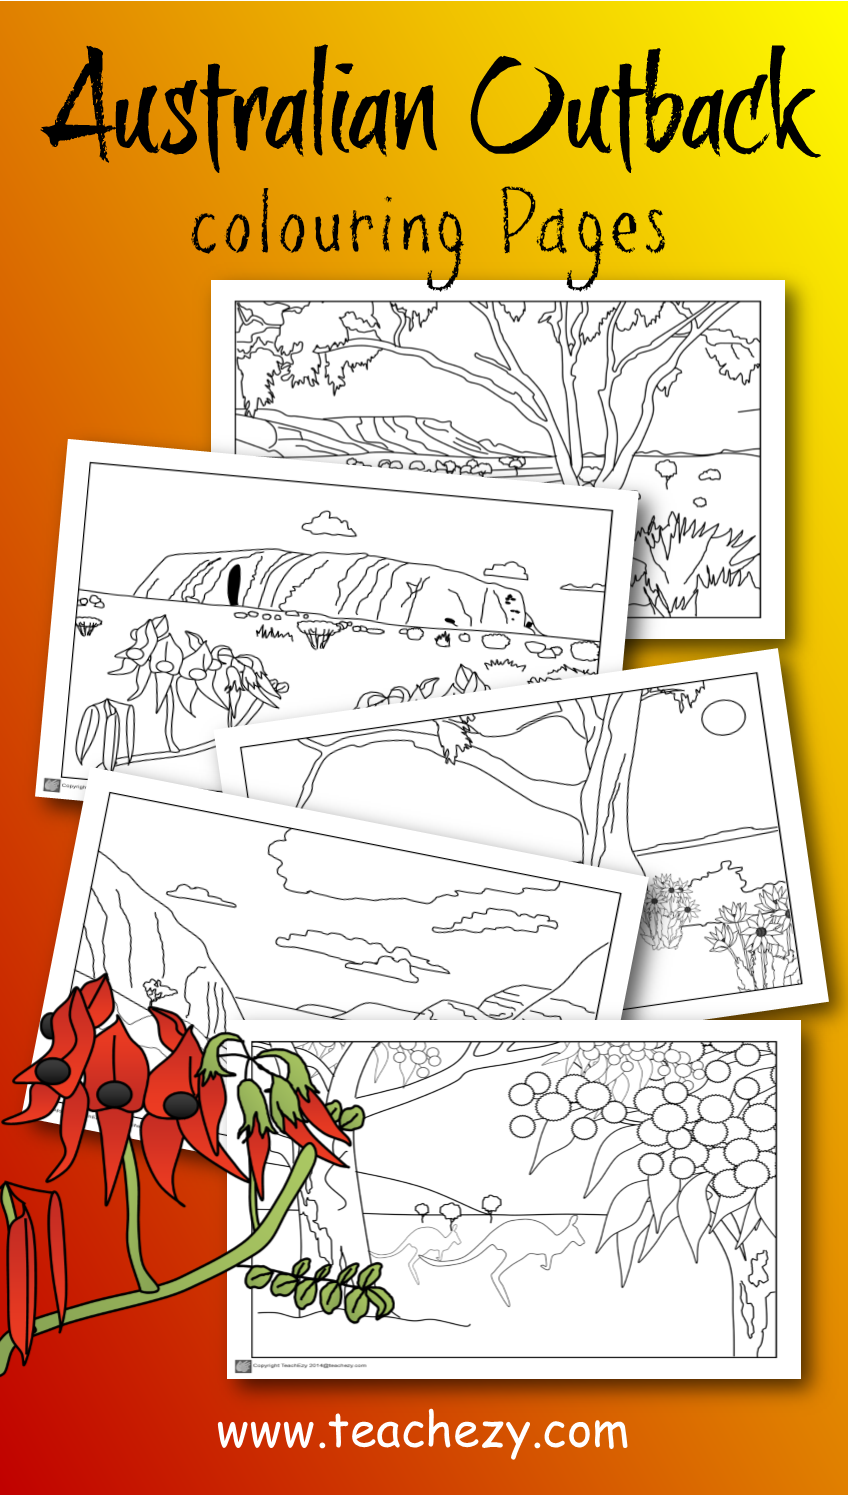 Australian Outback colouring pages Includes Uluru